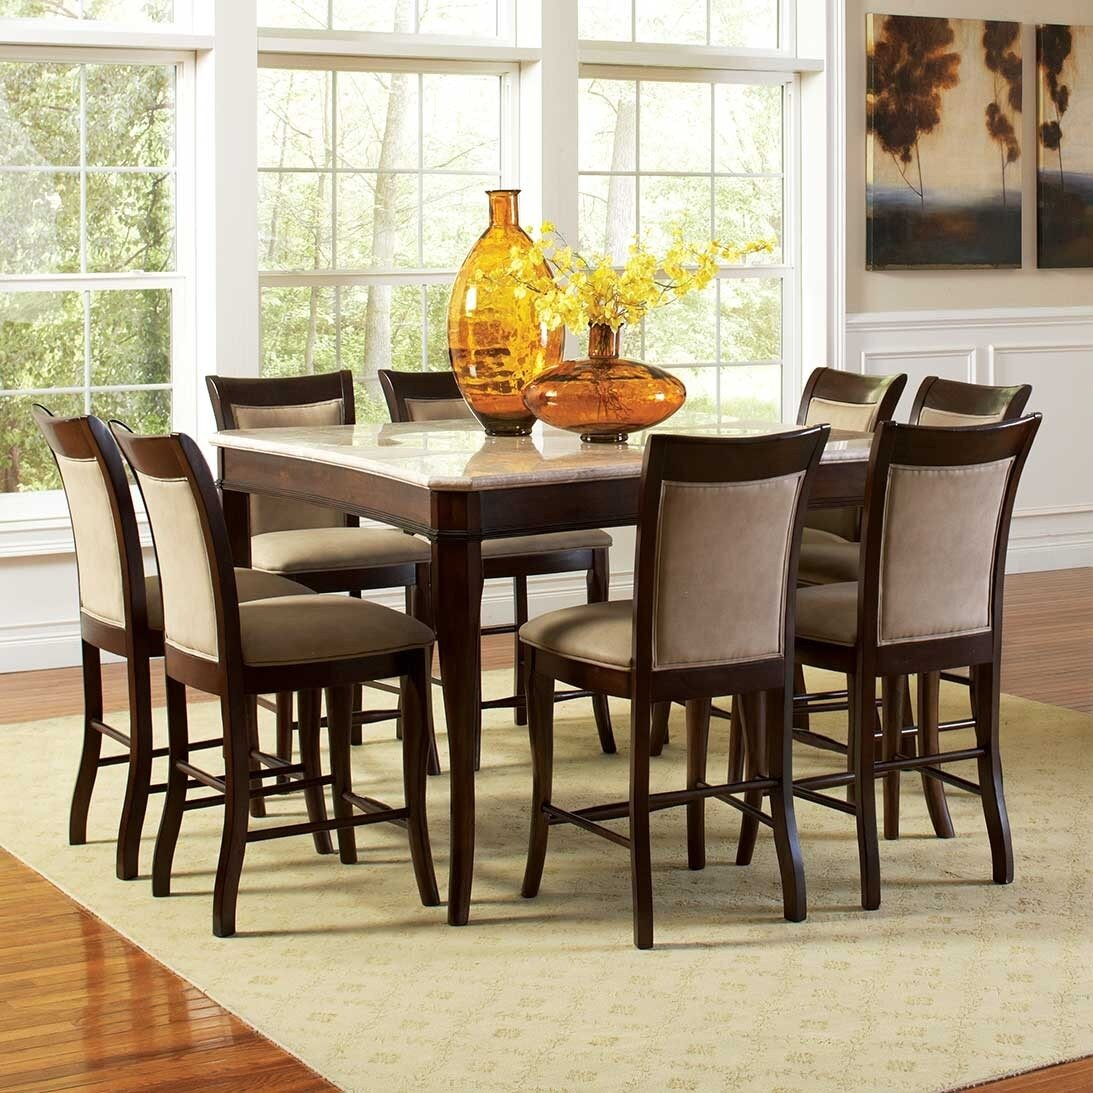 60 round dining table medium size of dining room tables with 60 inch round dining table quick view